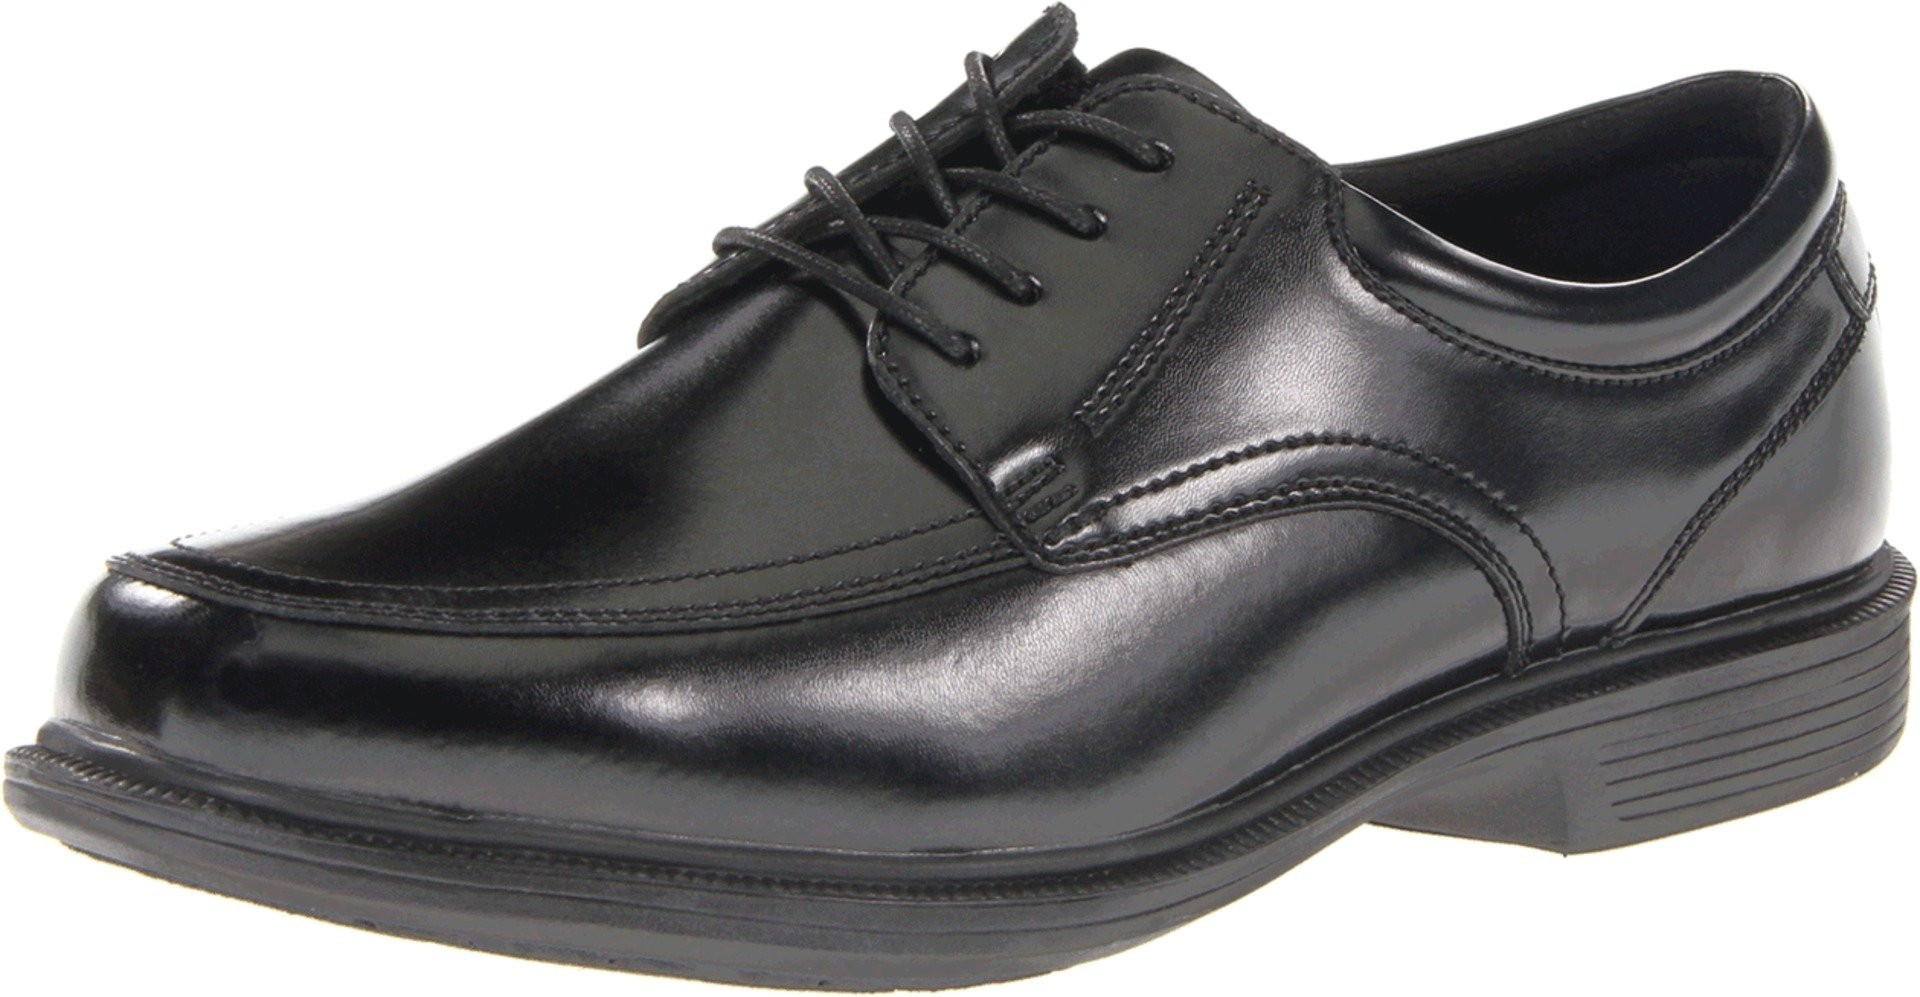 Nunn Bush Men's Bourbon Street Moccasin Toe Oxford KORE-Slip Resistant Dress Casual Lace Up